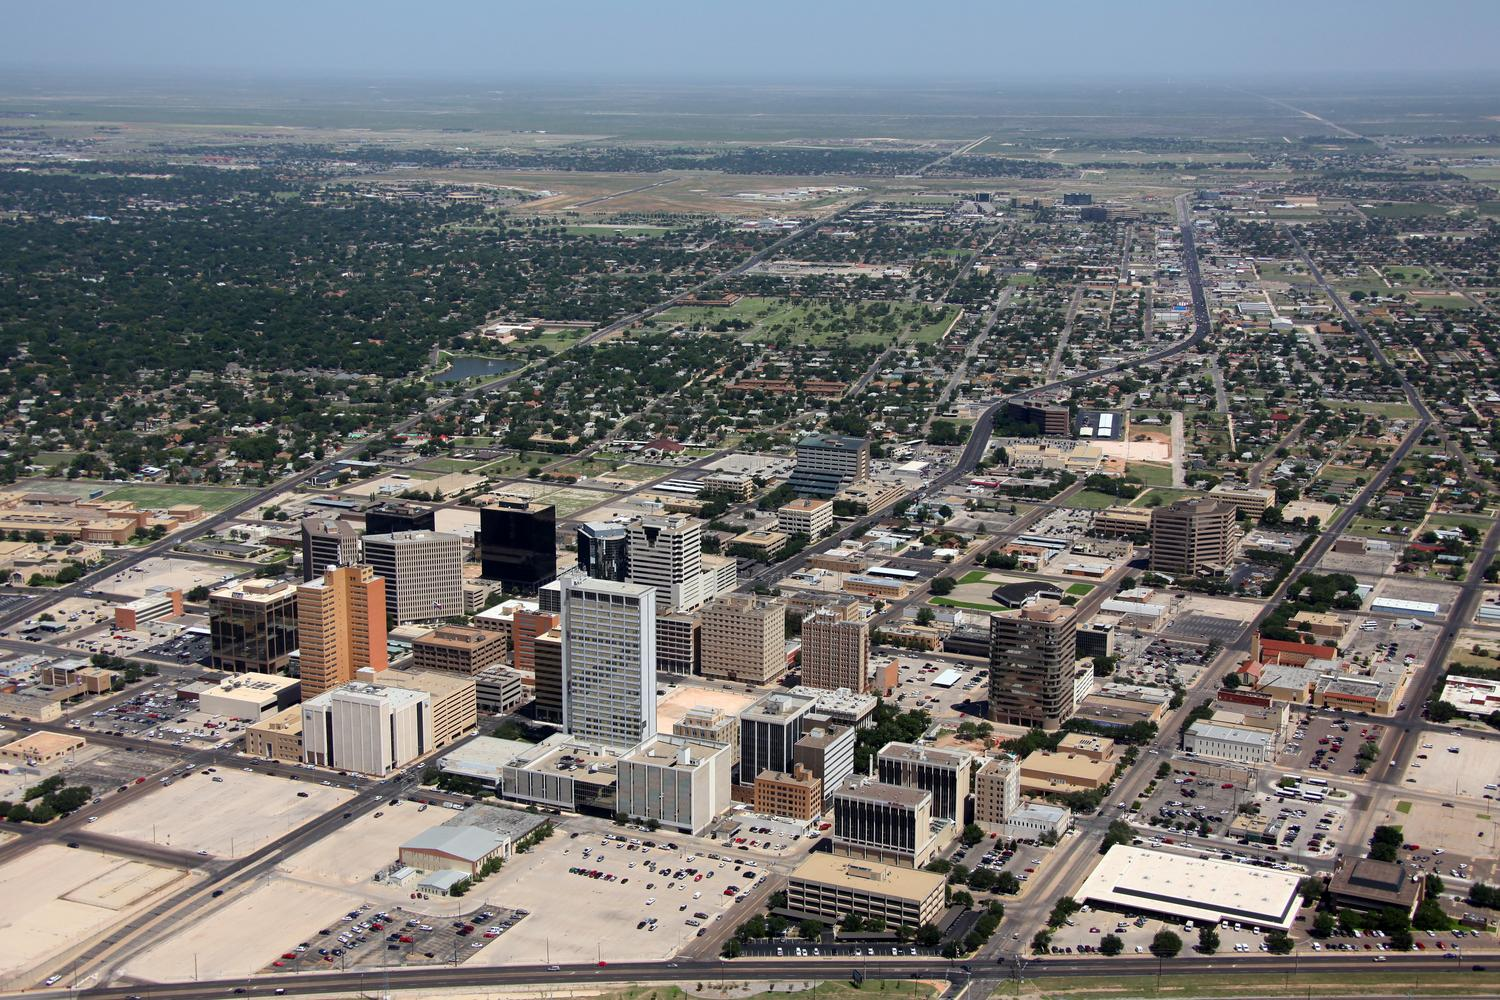 Downtown CBD- Midland Aerial Photography - Midland Aerial Photographer - Midland Drone Photography - Midland, Texas